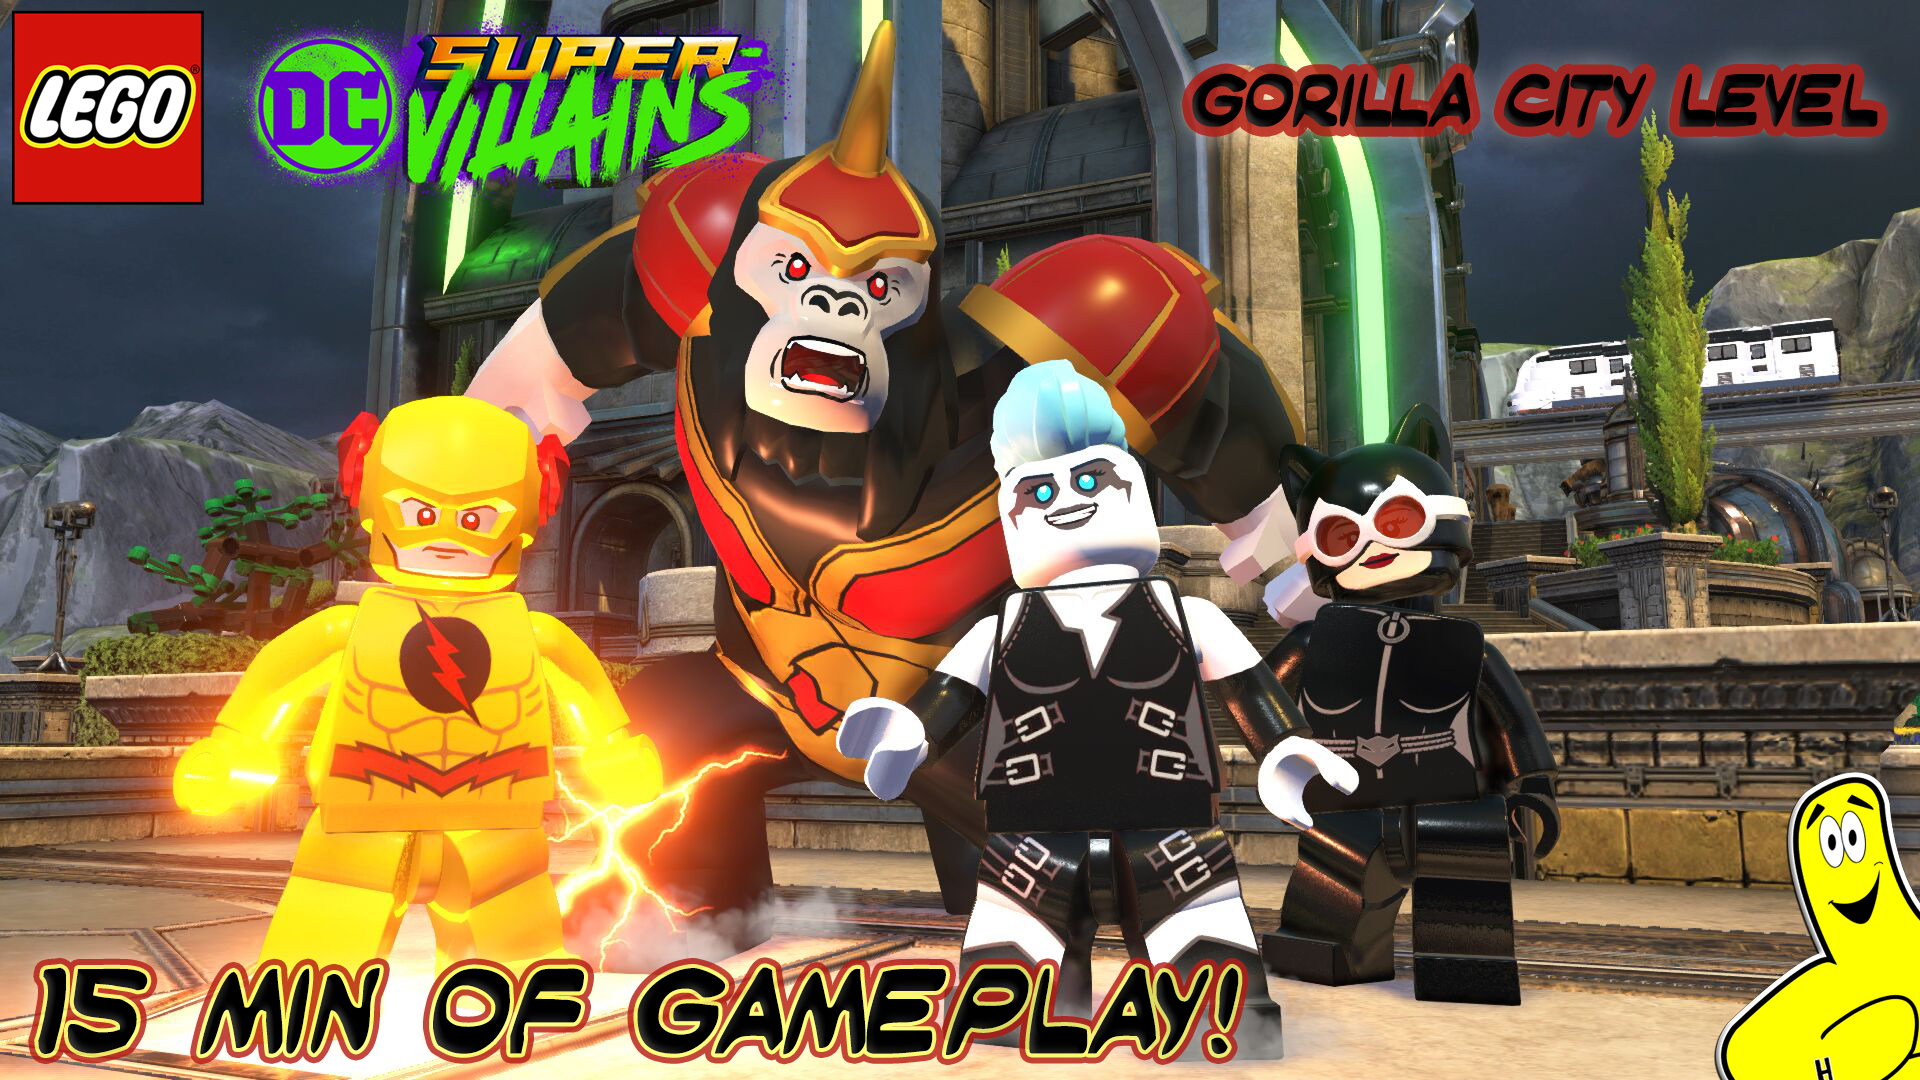 Lego DC Super-Villains: Gorilla City Level Gameplay (Gamescom Demo)- HTG